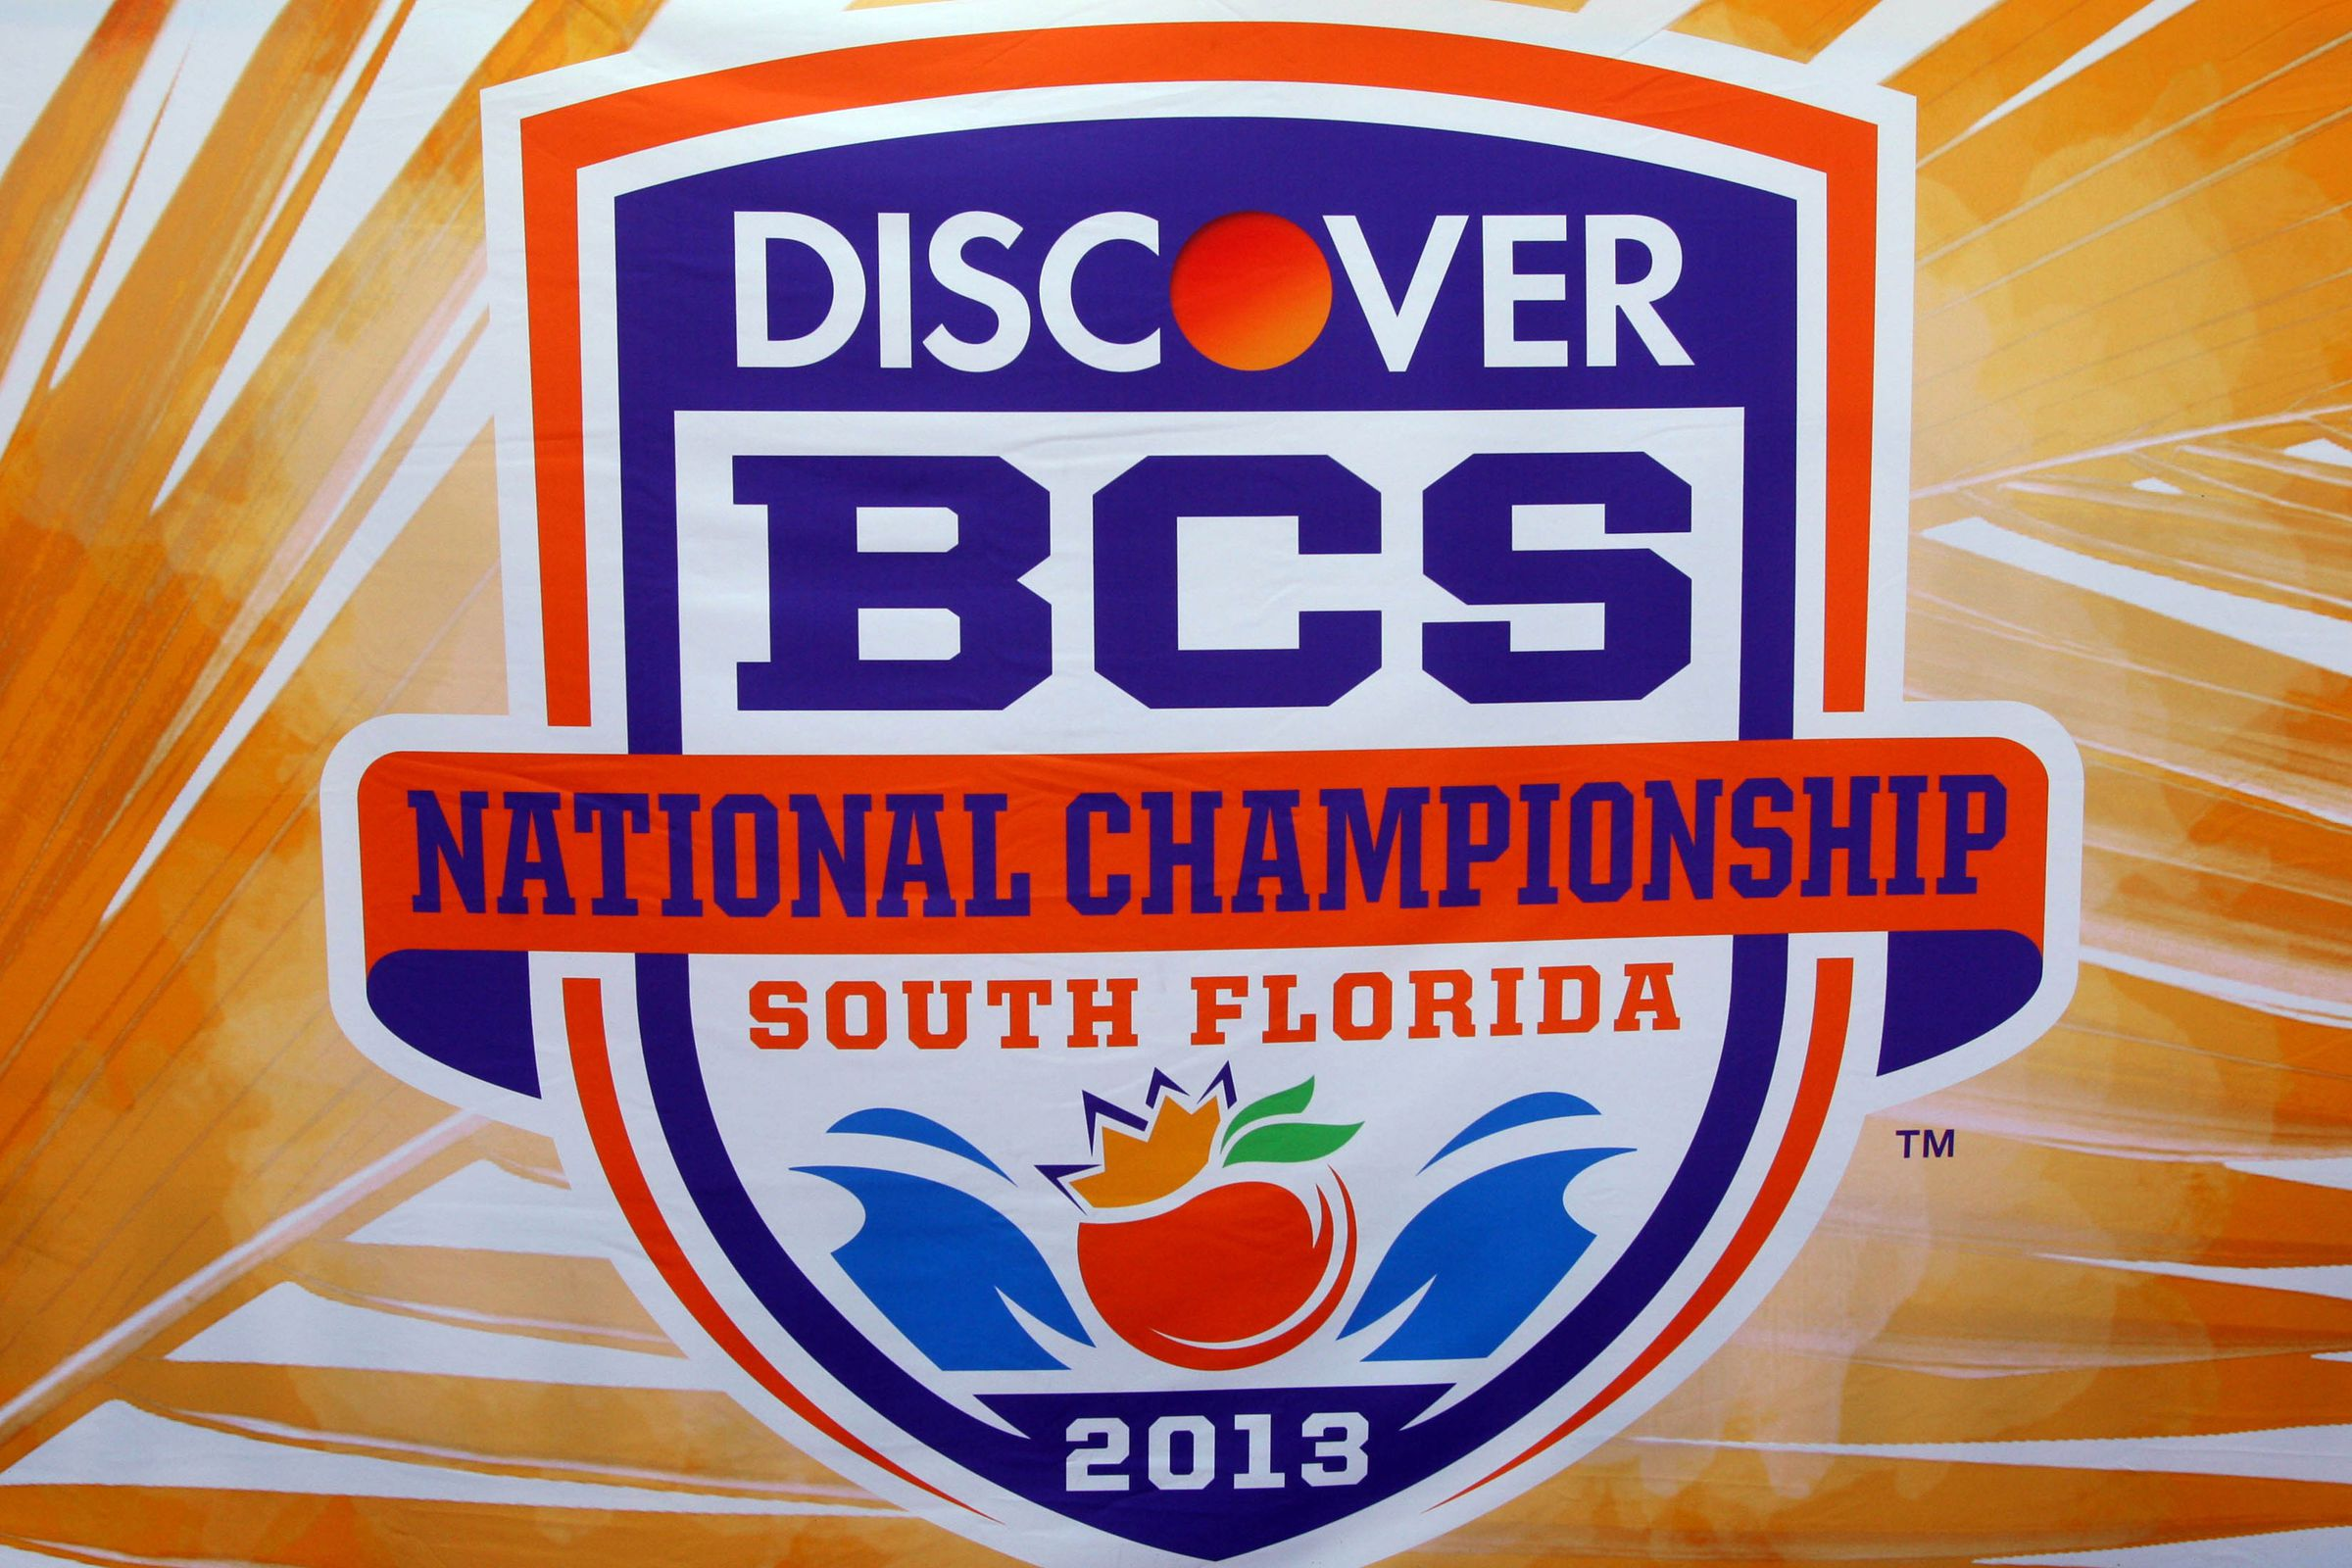 football schedule tonight bcs national championship game